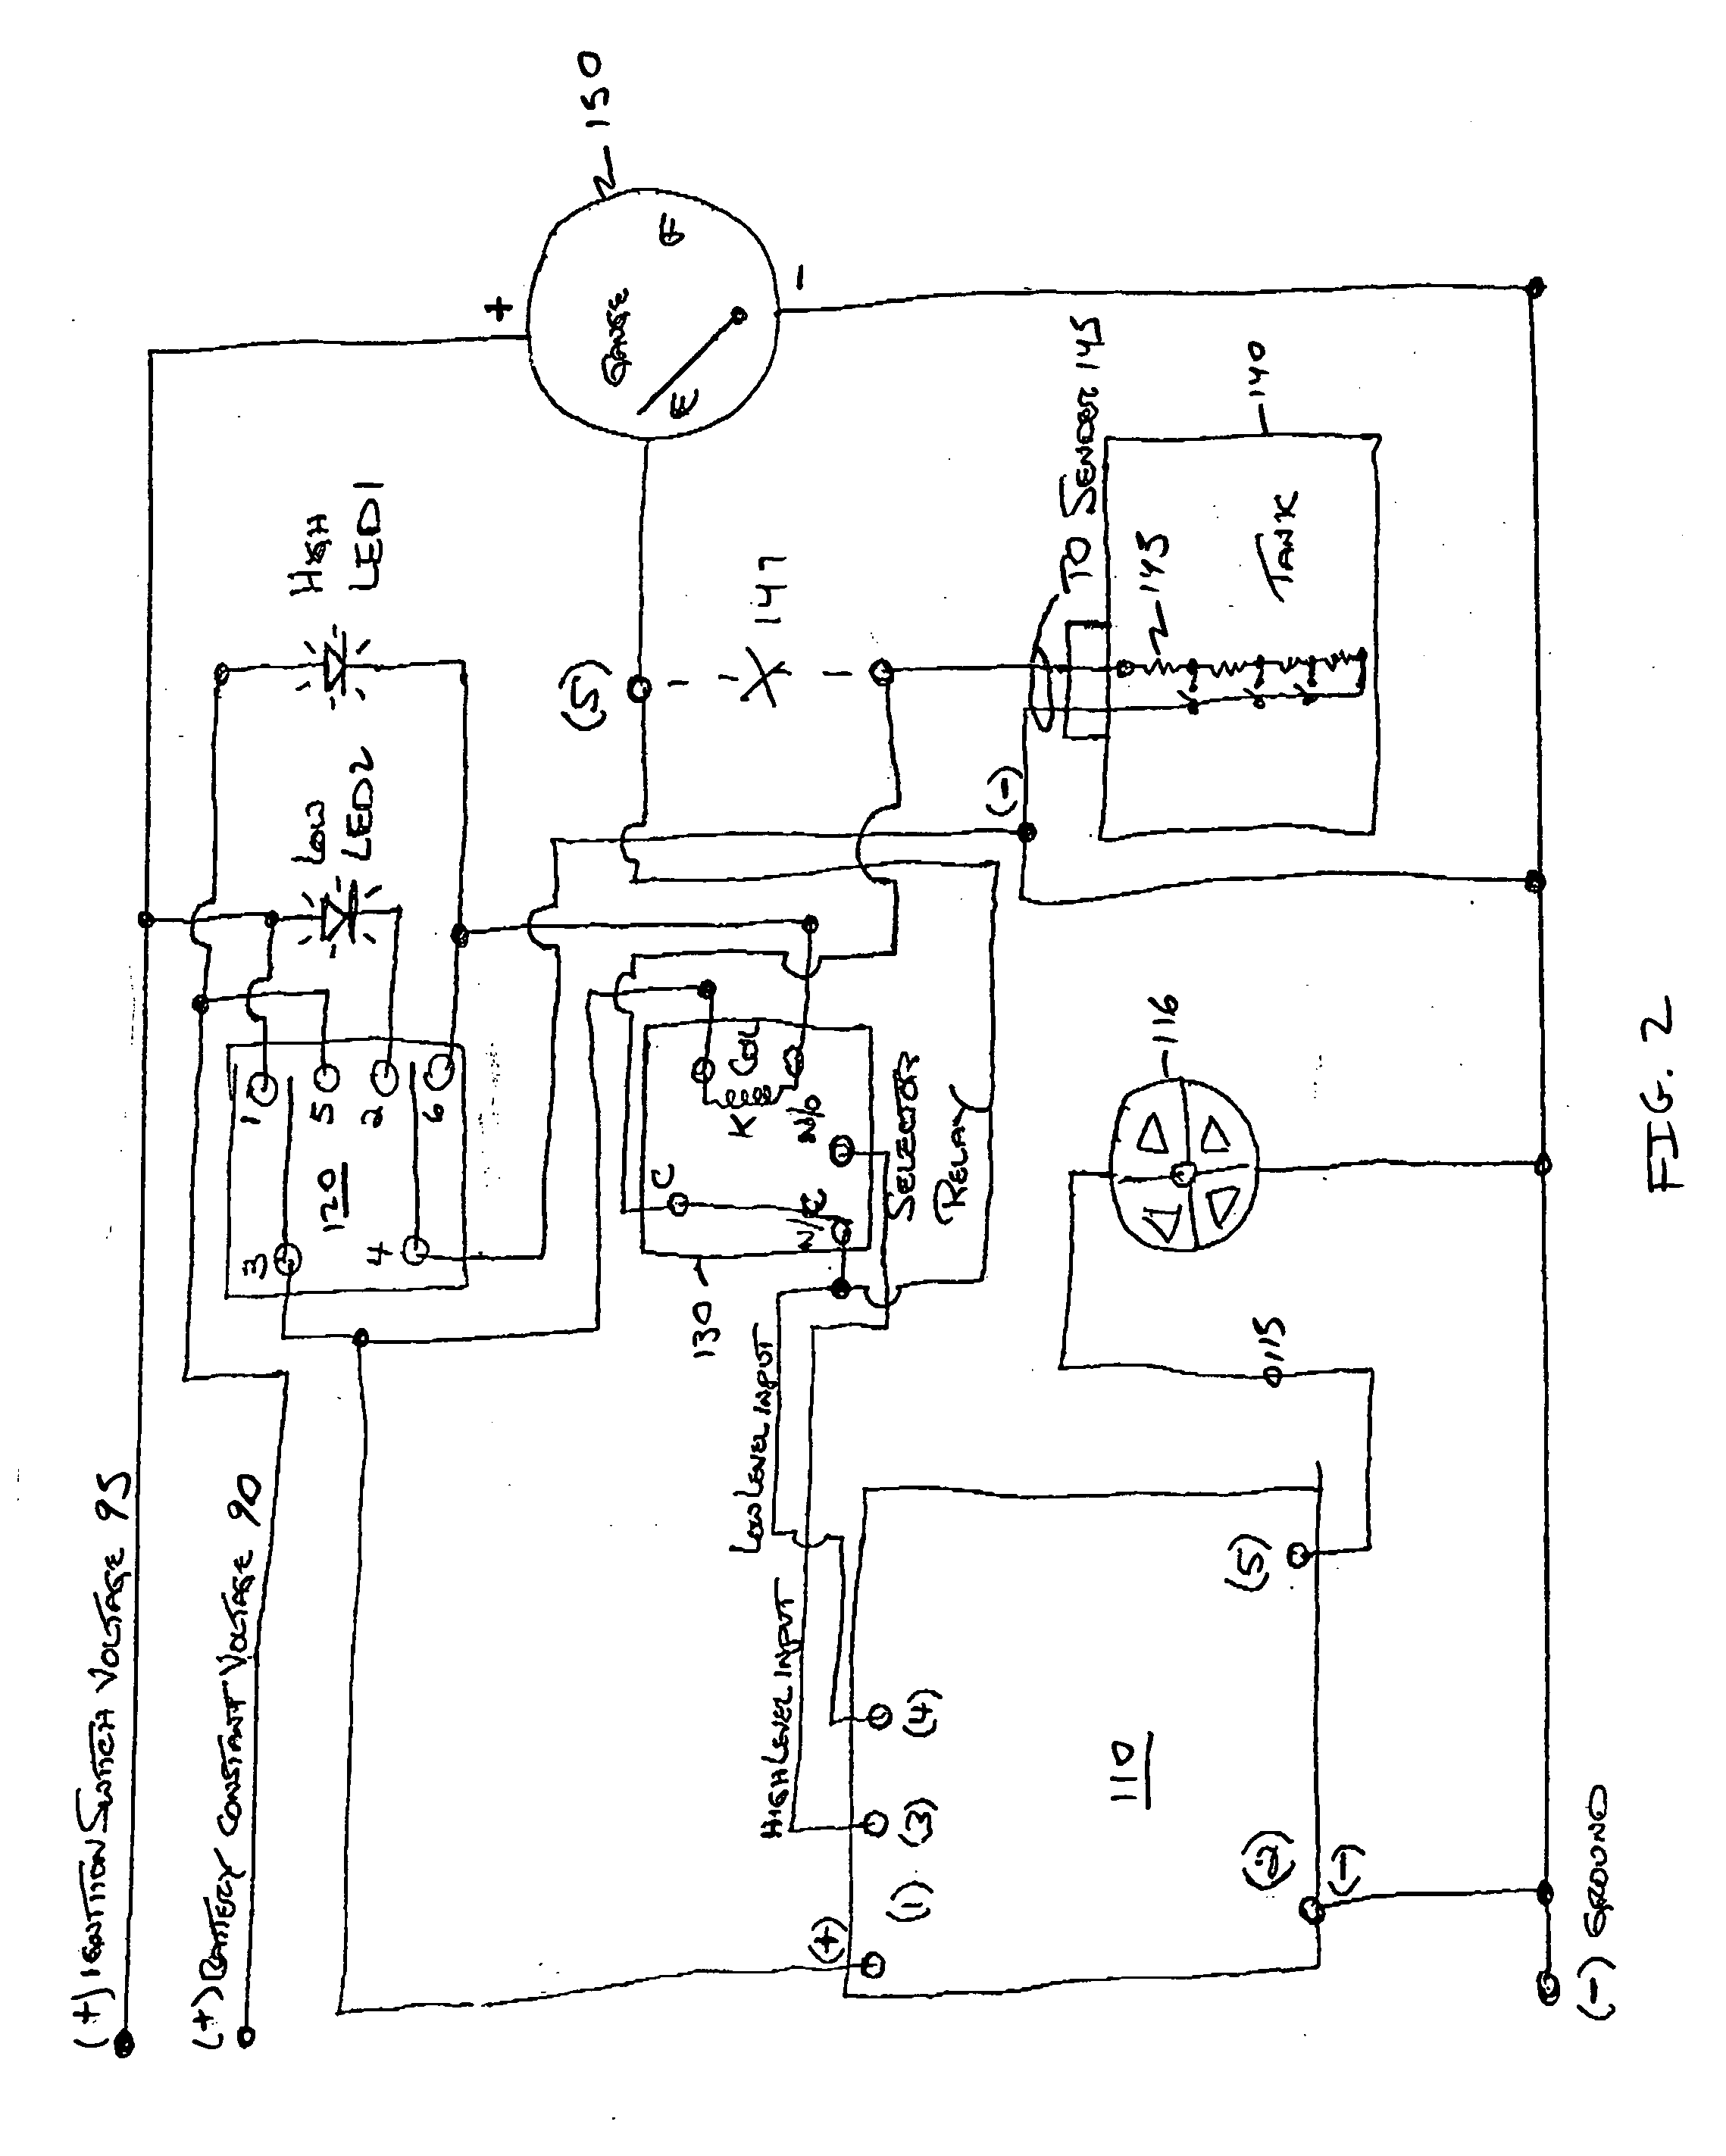 Viper Car Alarms Wiring Diagrams, Viper, Get Free Image